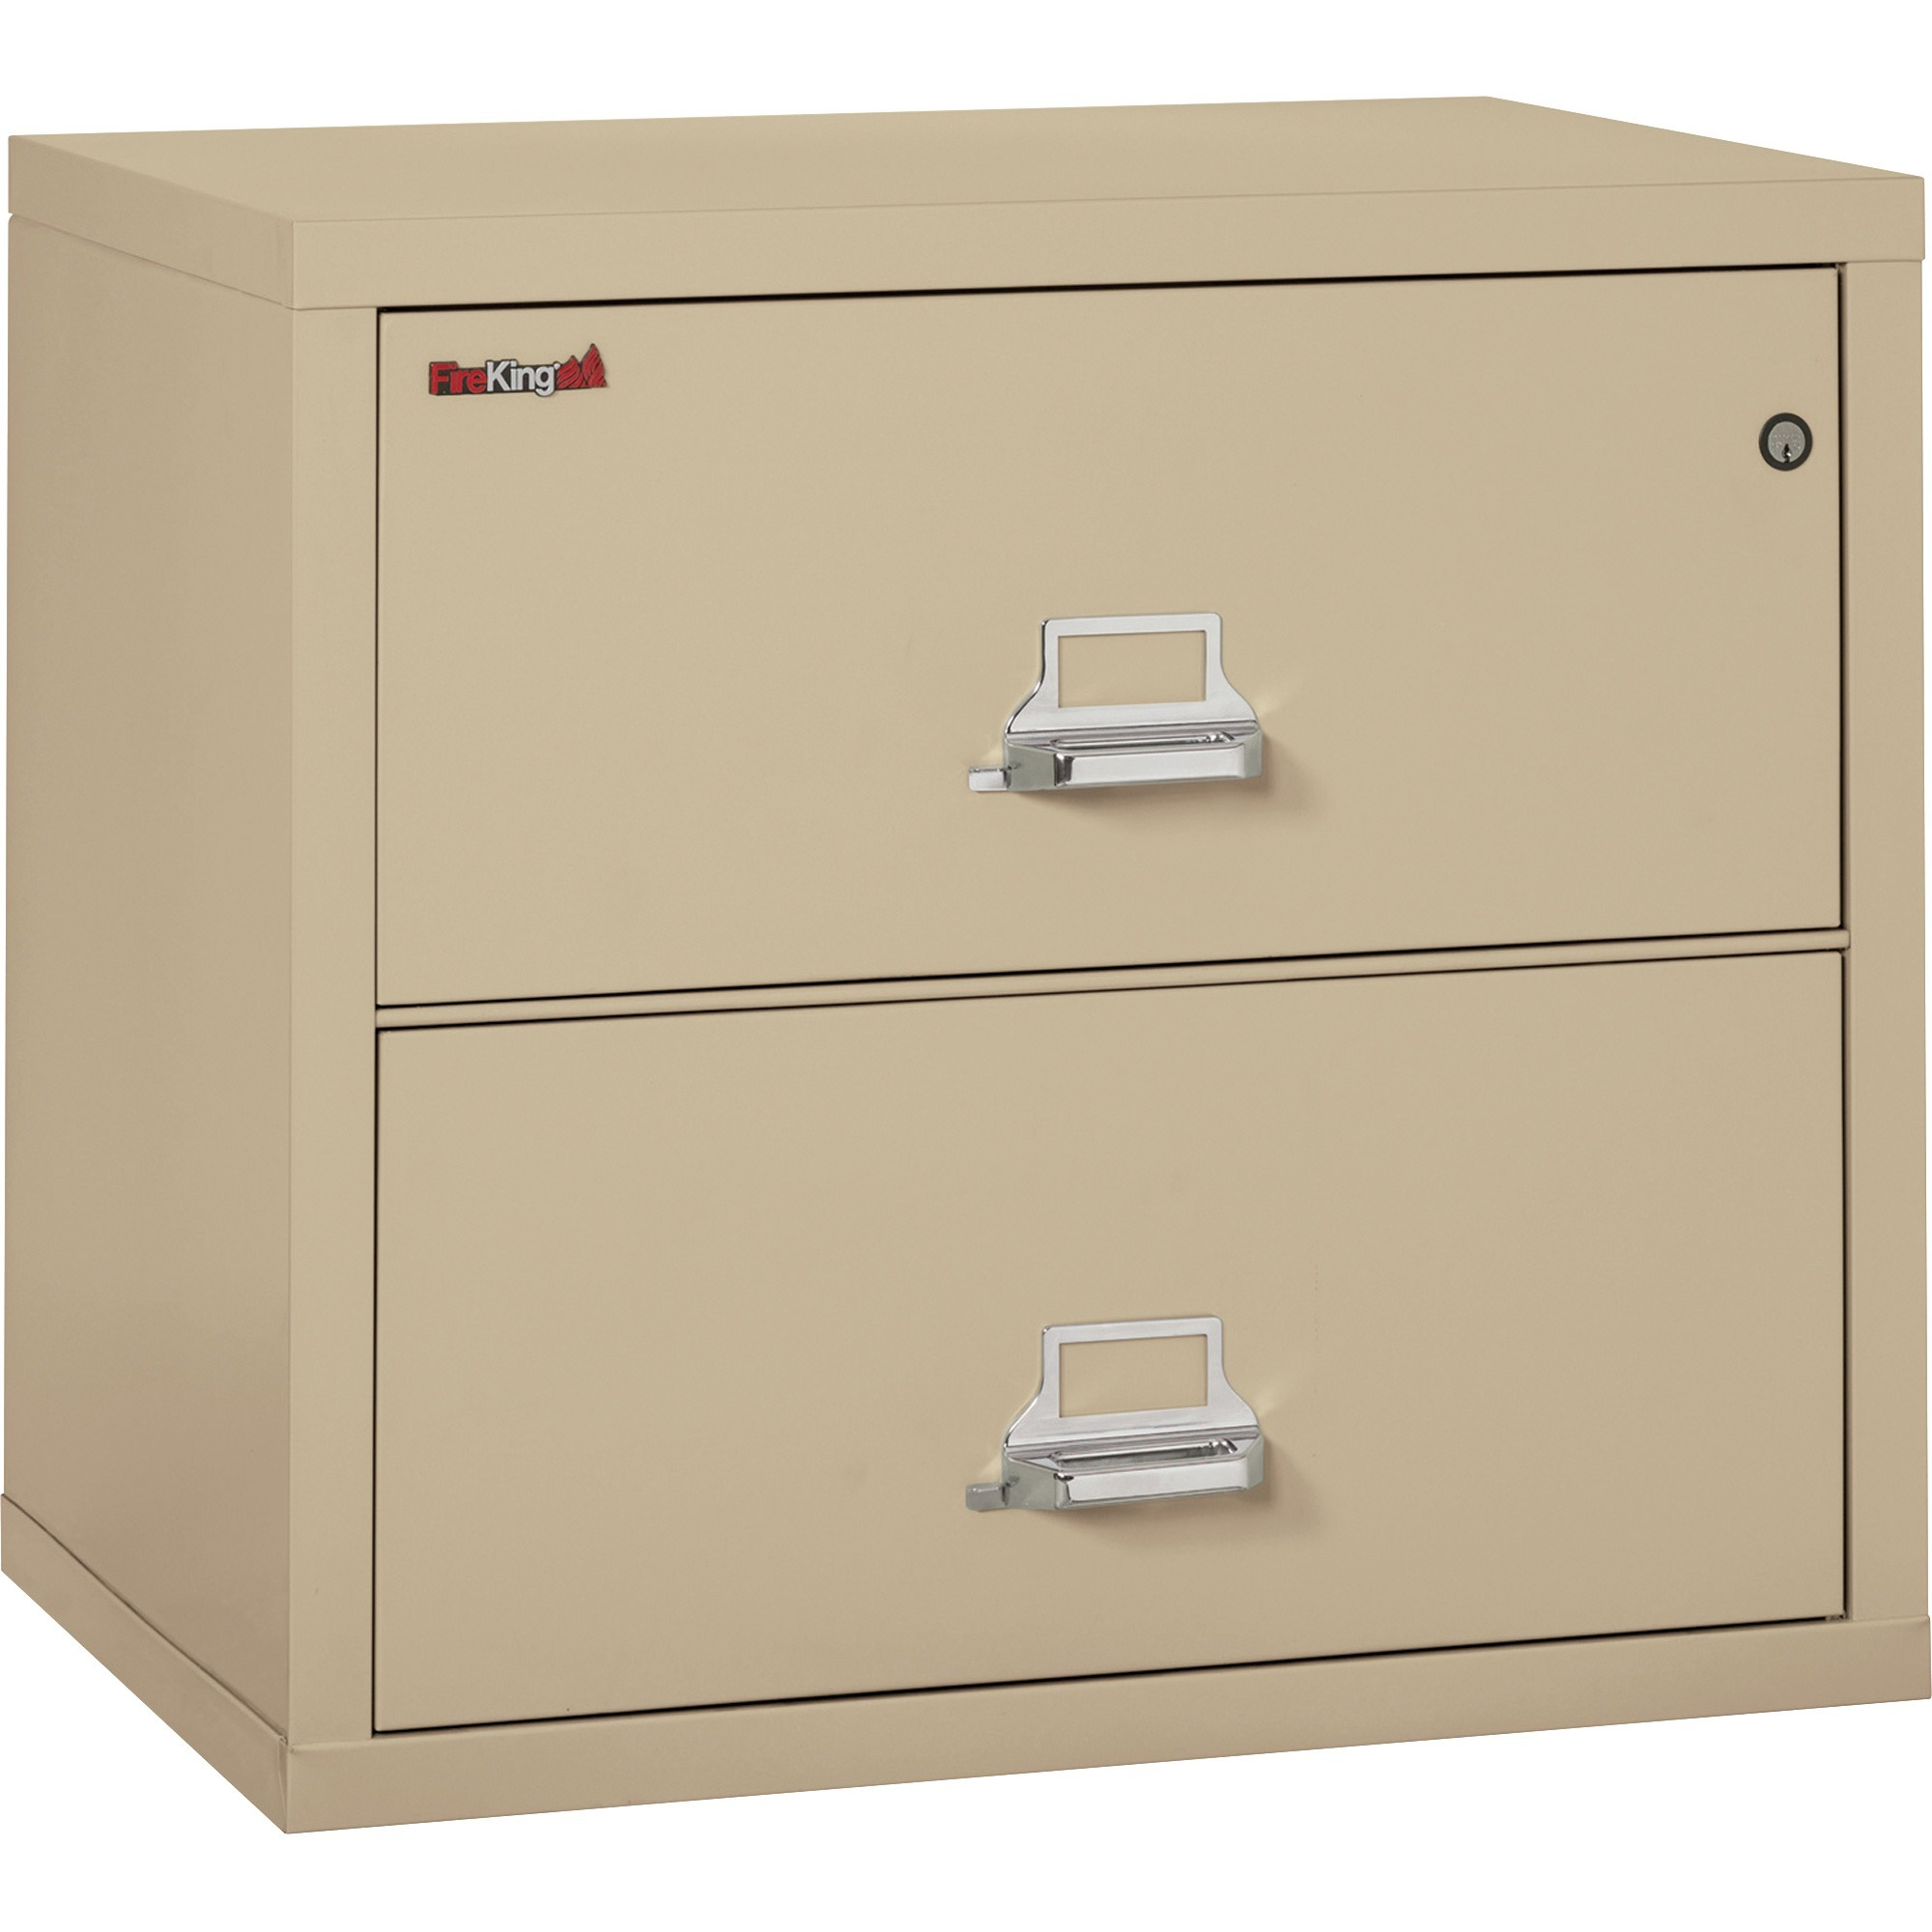 Fireking insulated file cabinet 31 1 x 22 1 x 27 8 2 x drawers for file letter legal lateral fire resistant parchment powder coated